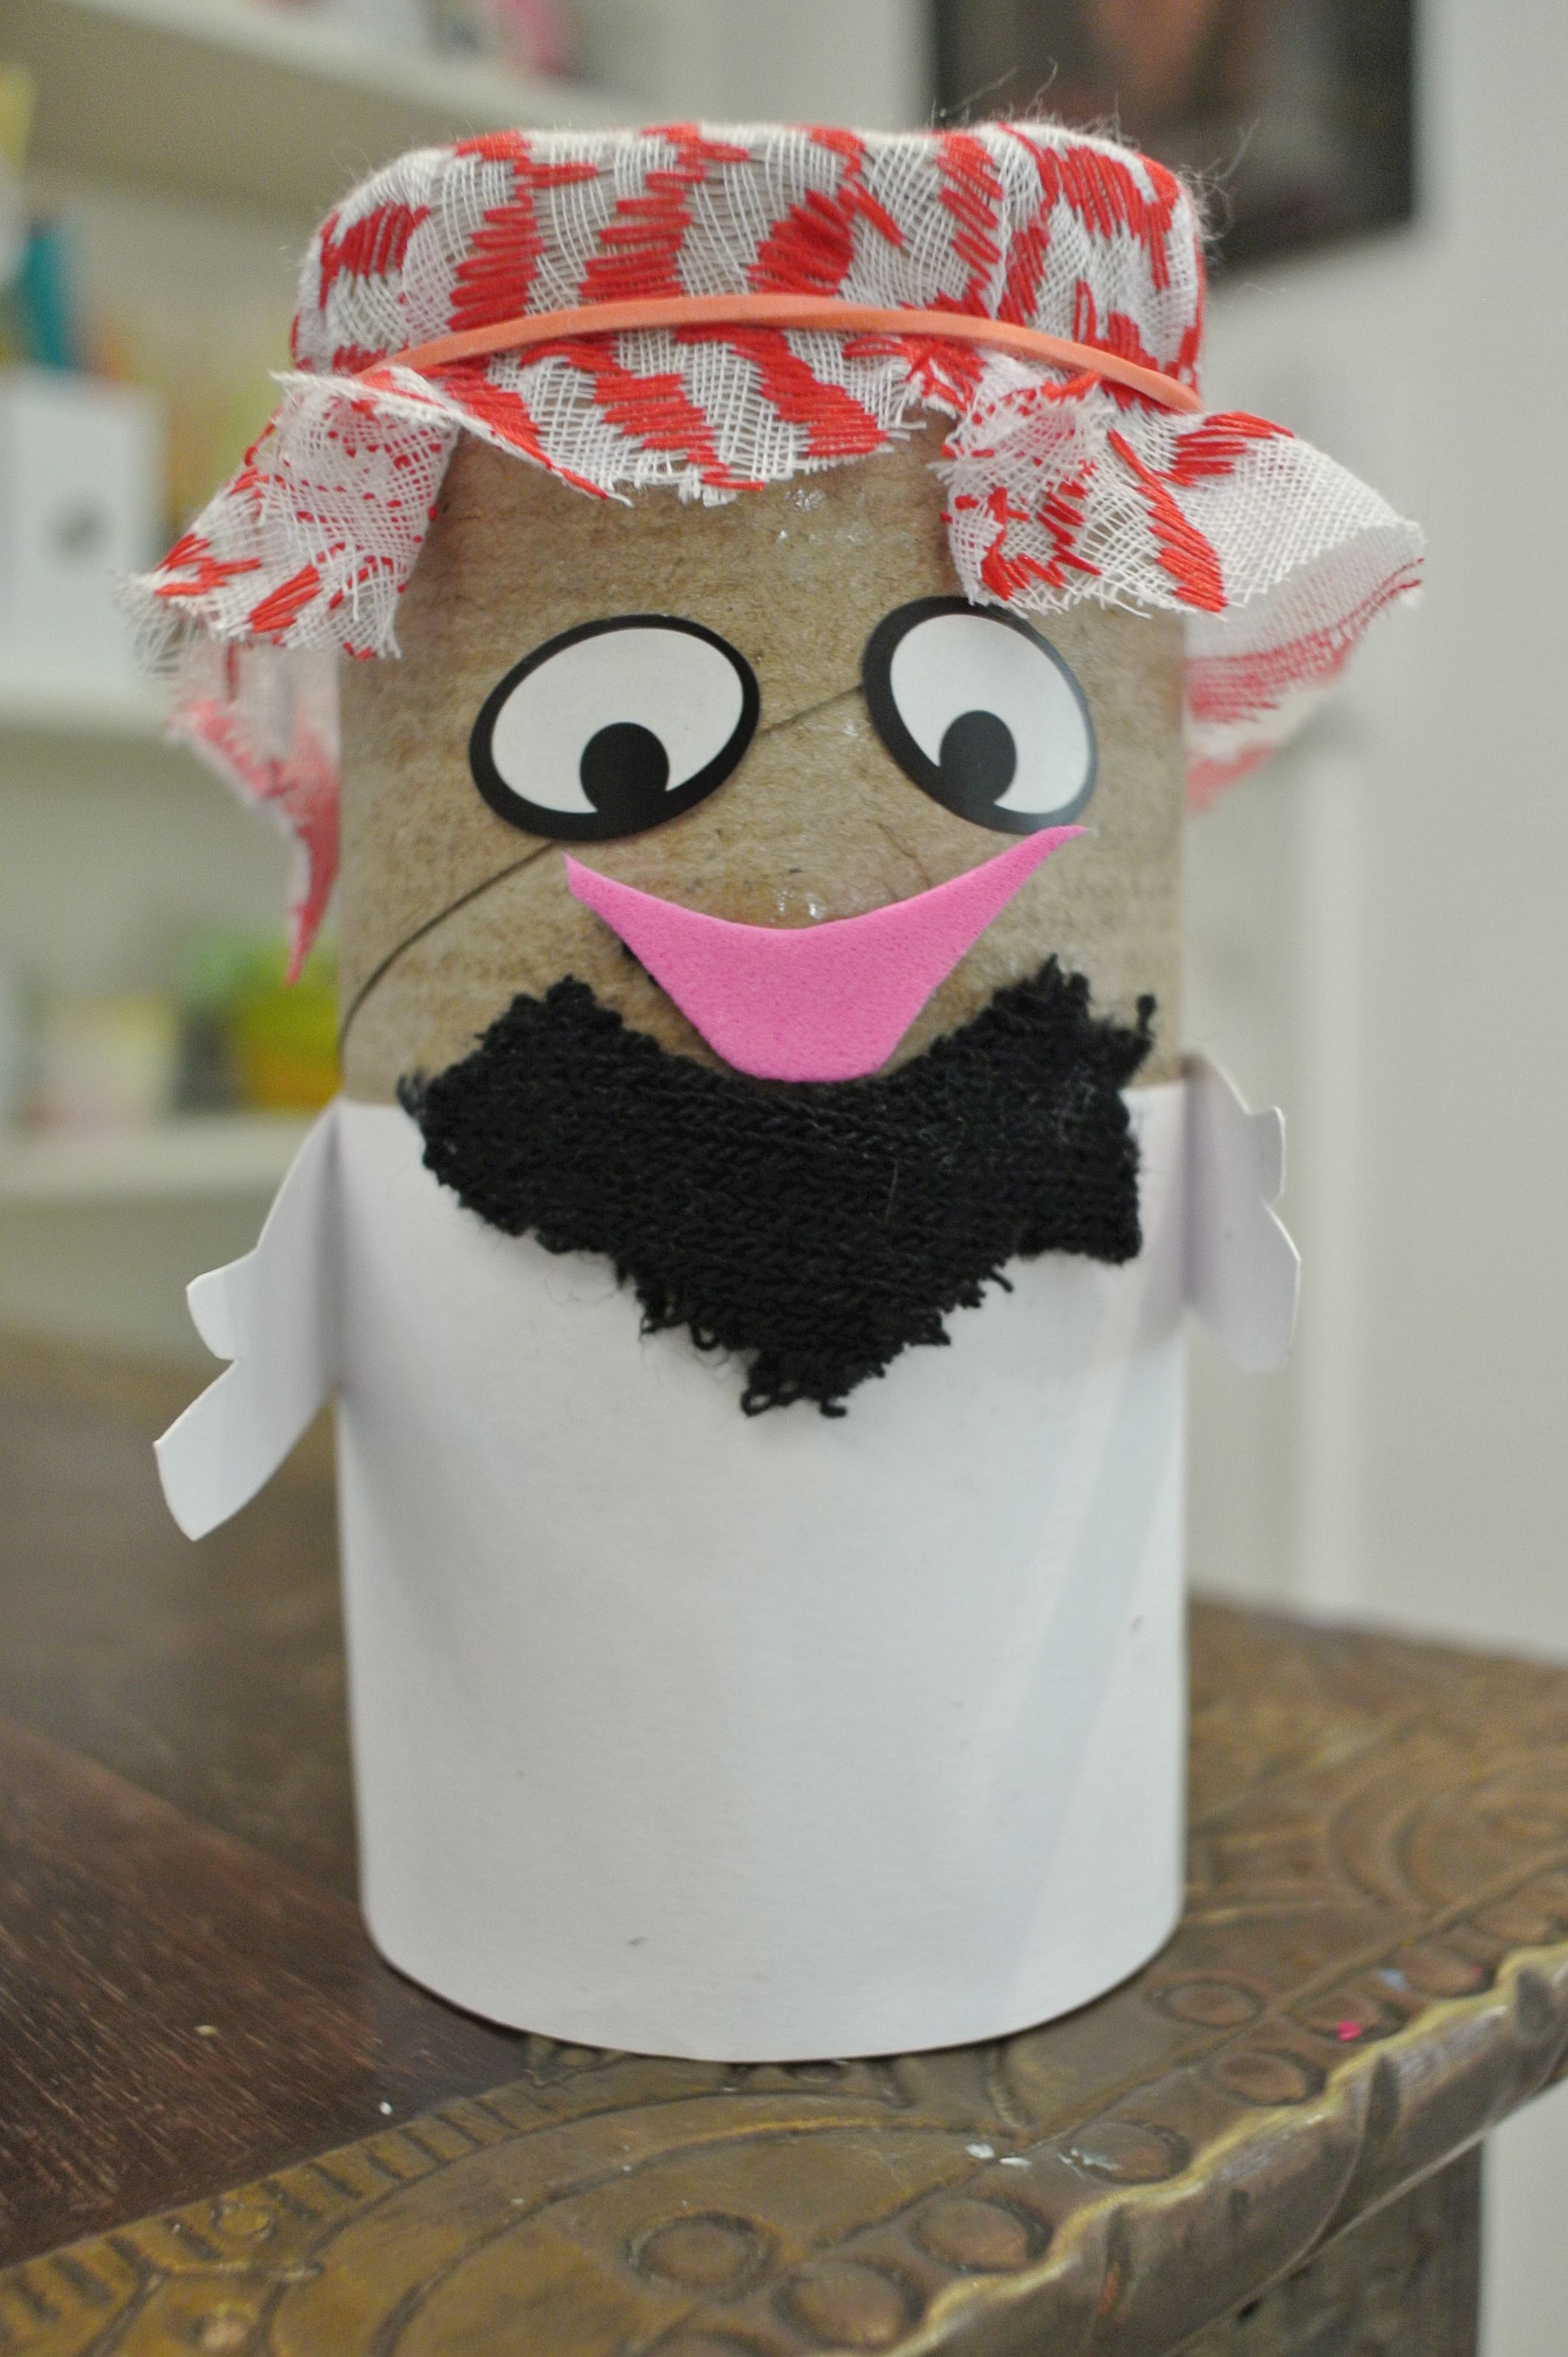 We Made This Chap To Celebrate Uae National Day